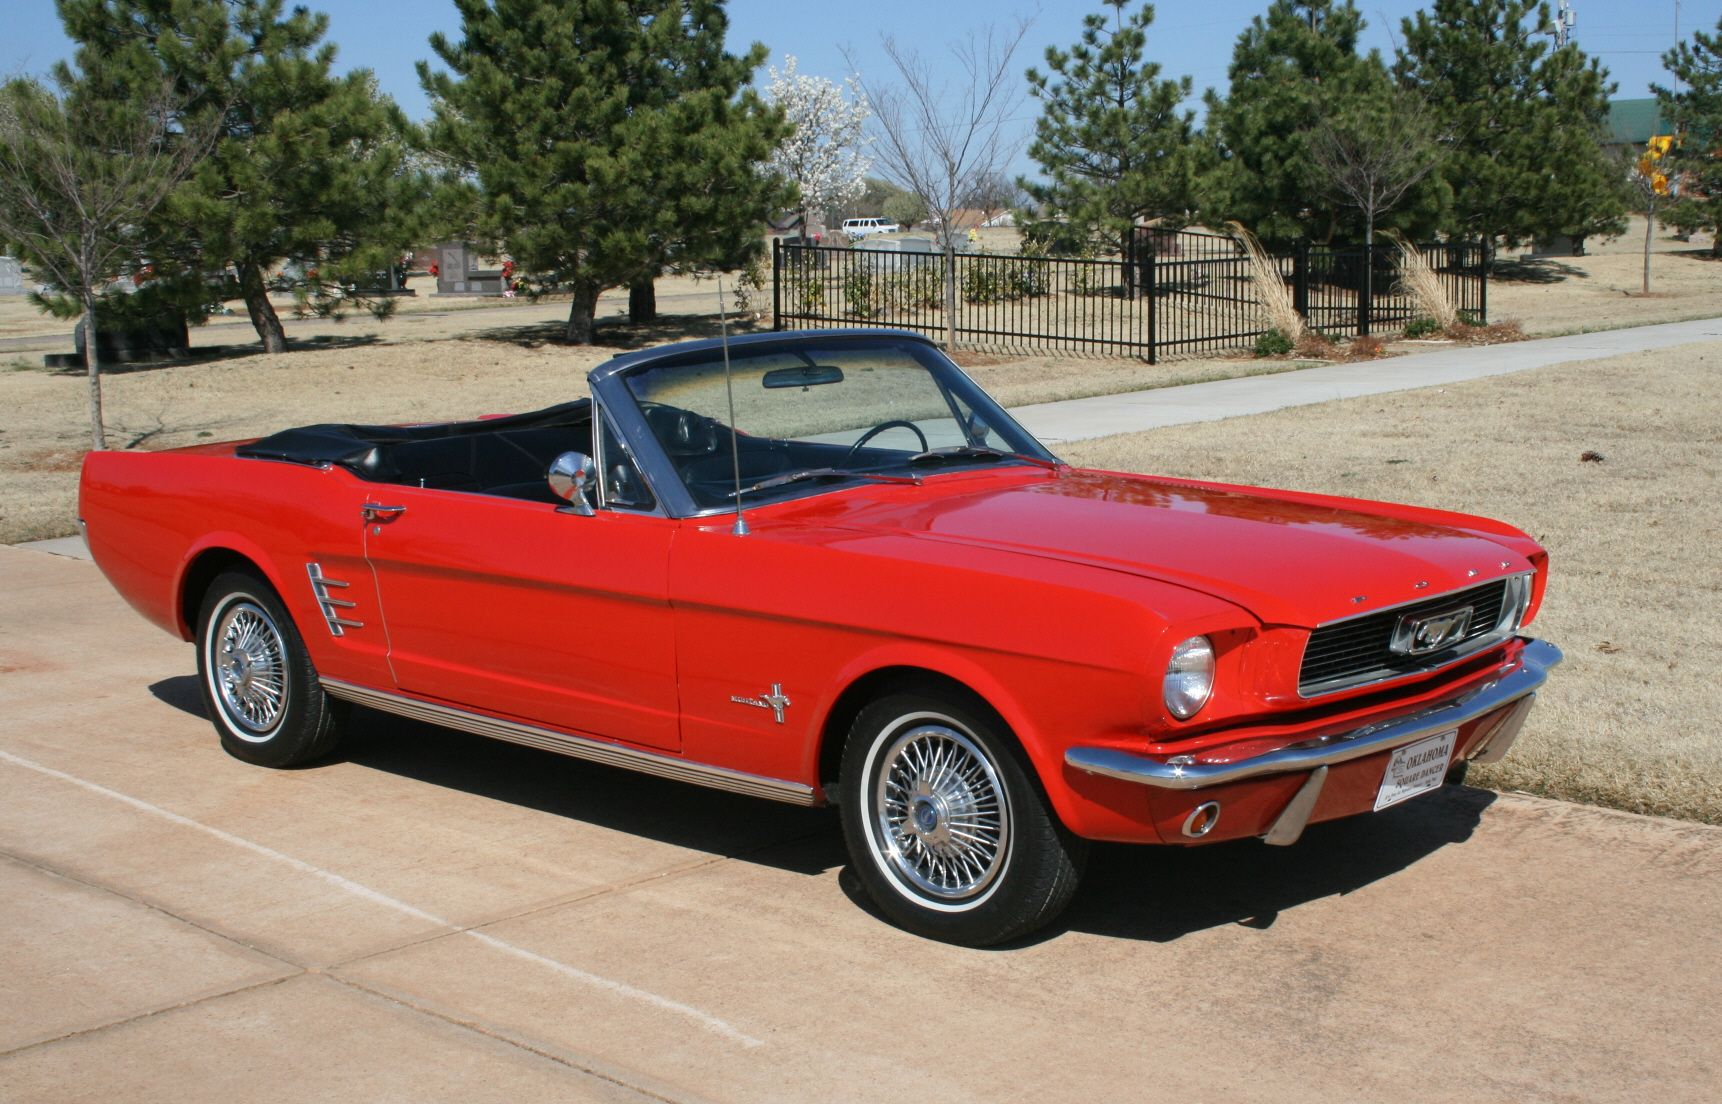 1965 Mustang - It really should be on my wish list board, though ...